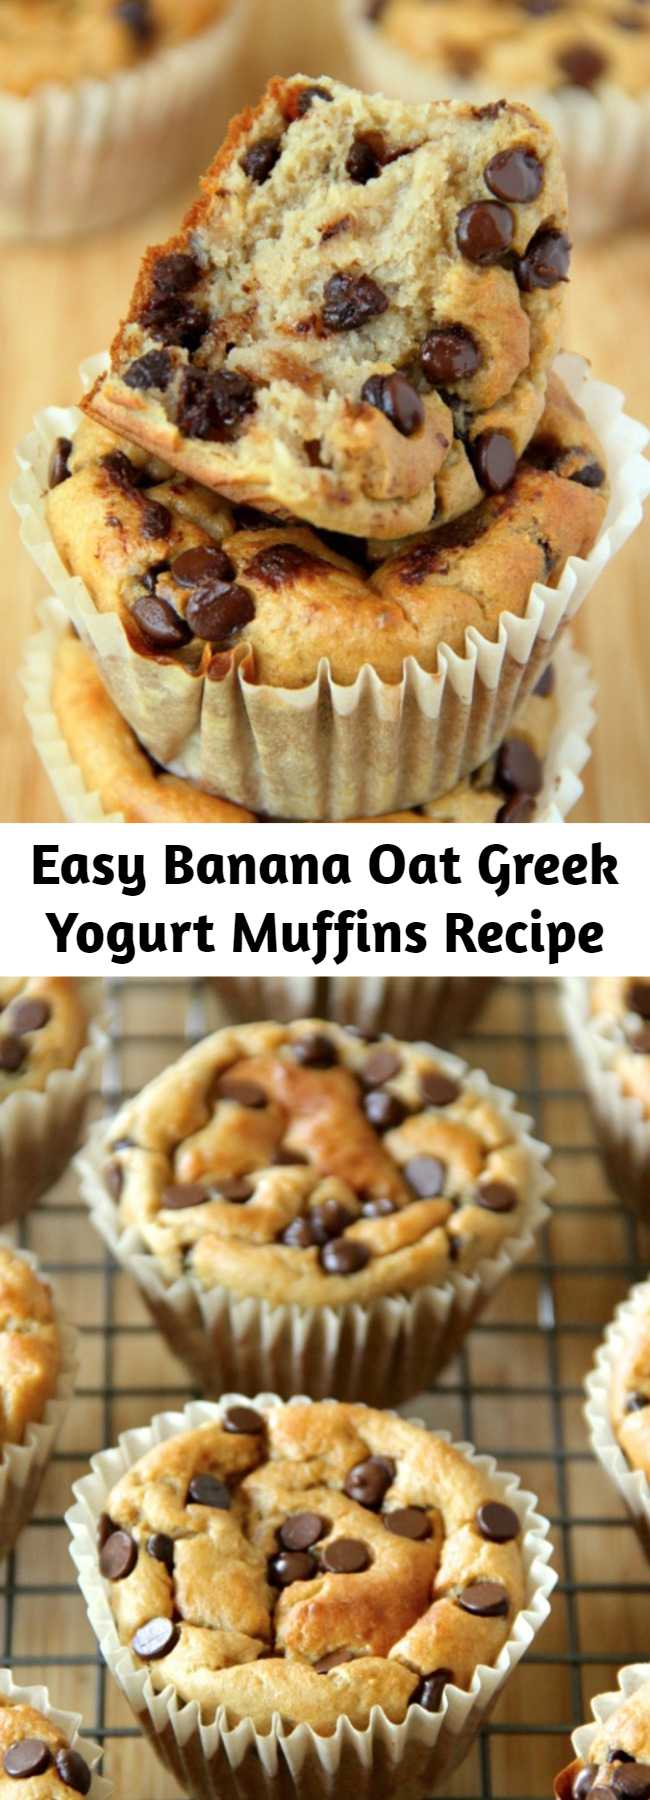 Easy Banana Oat Greek Yogurt Muffins Recipe - Made with no flour or oil, these Banana Oat Greek Yogurt Muffins make for a deliciously healthy breakfast or snack!